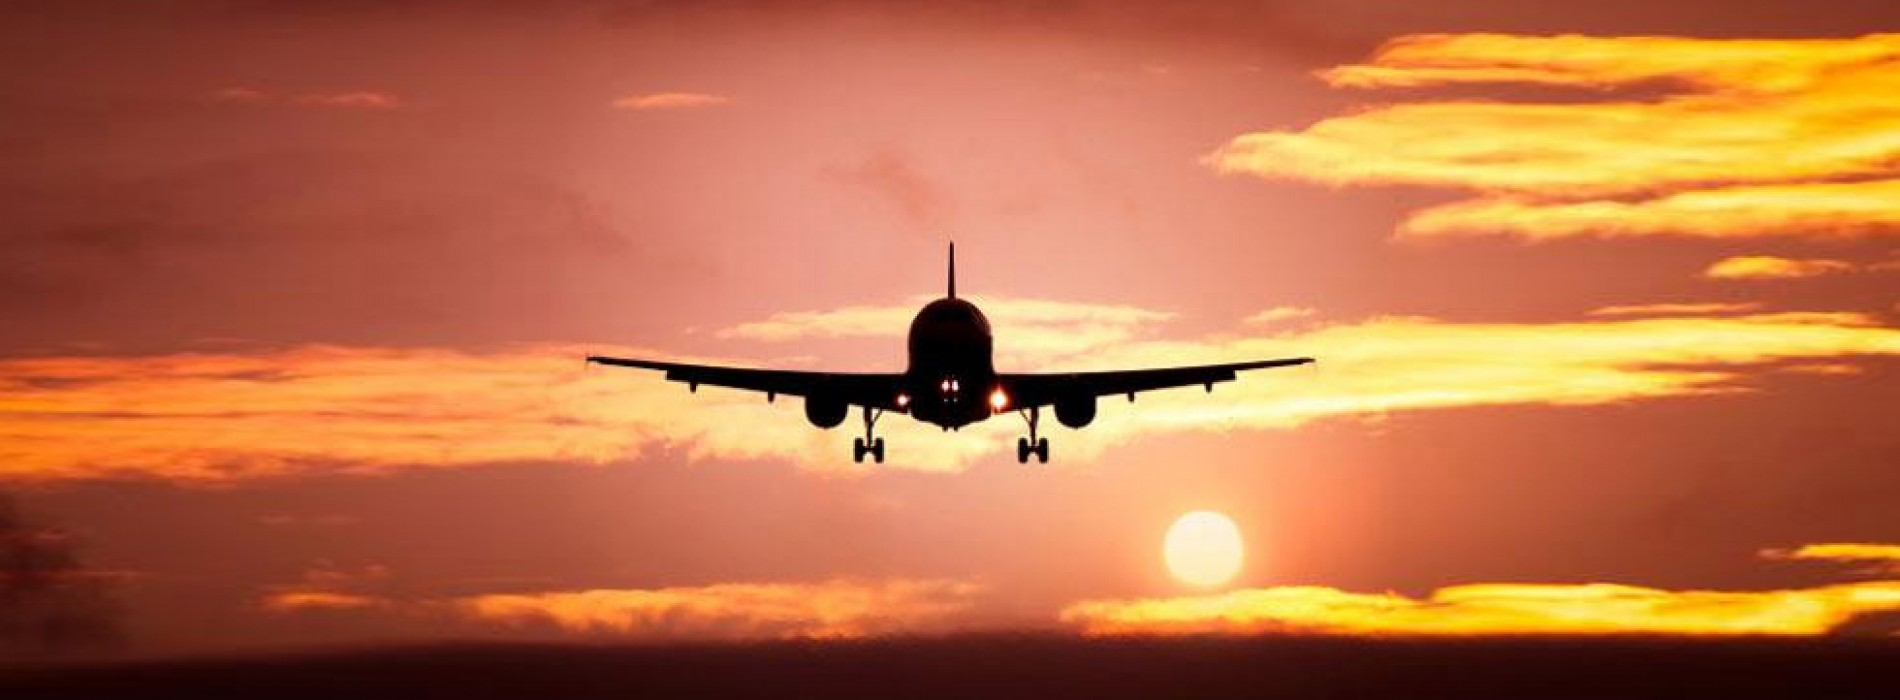 Achche Din for aviation sector: India sees highest domestic air passenger growth in 2016